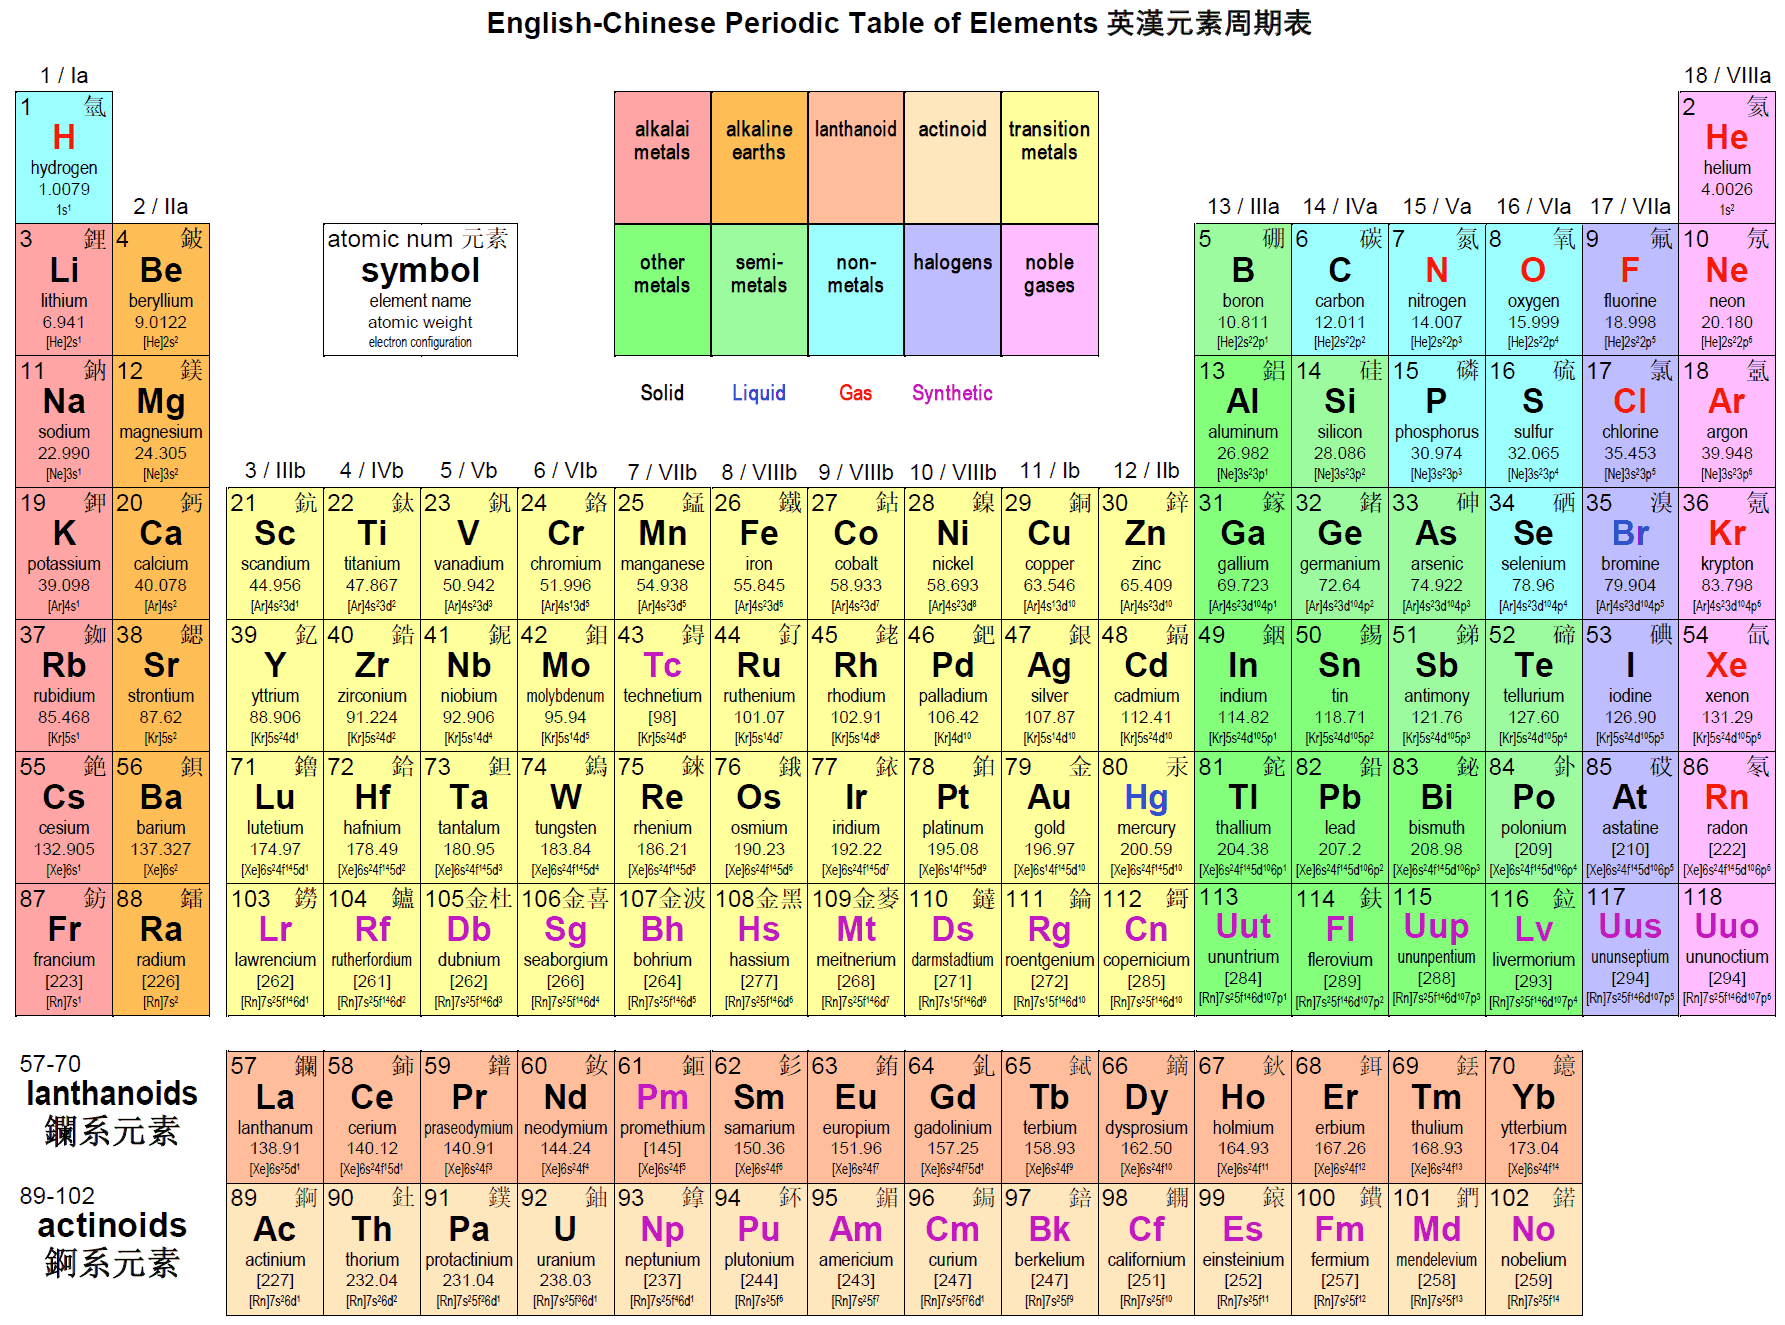 Periodic tables of the elements in american englishmichael canov amer19g gamestrikefo Images